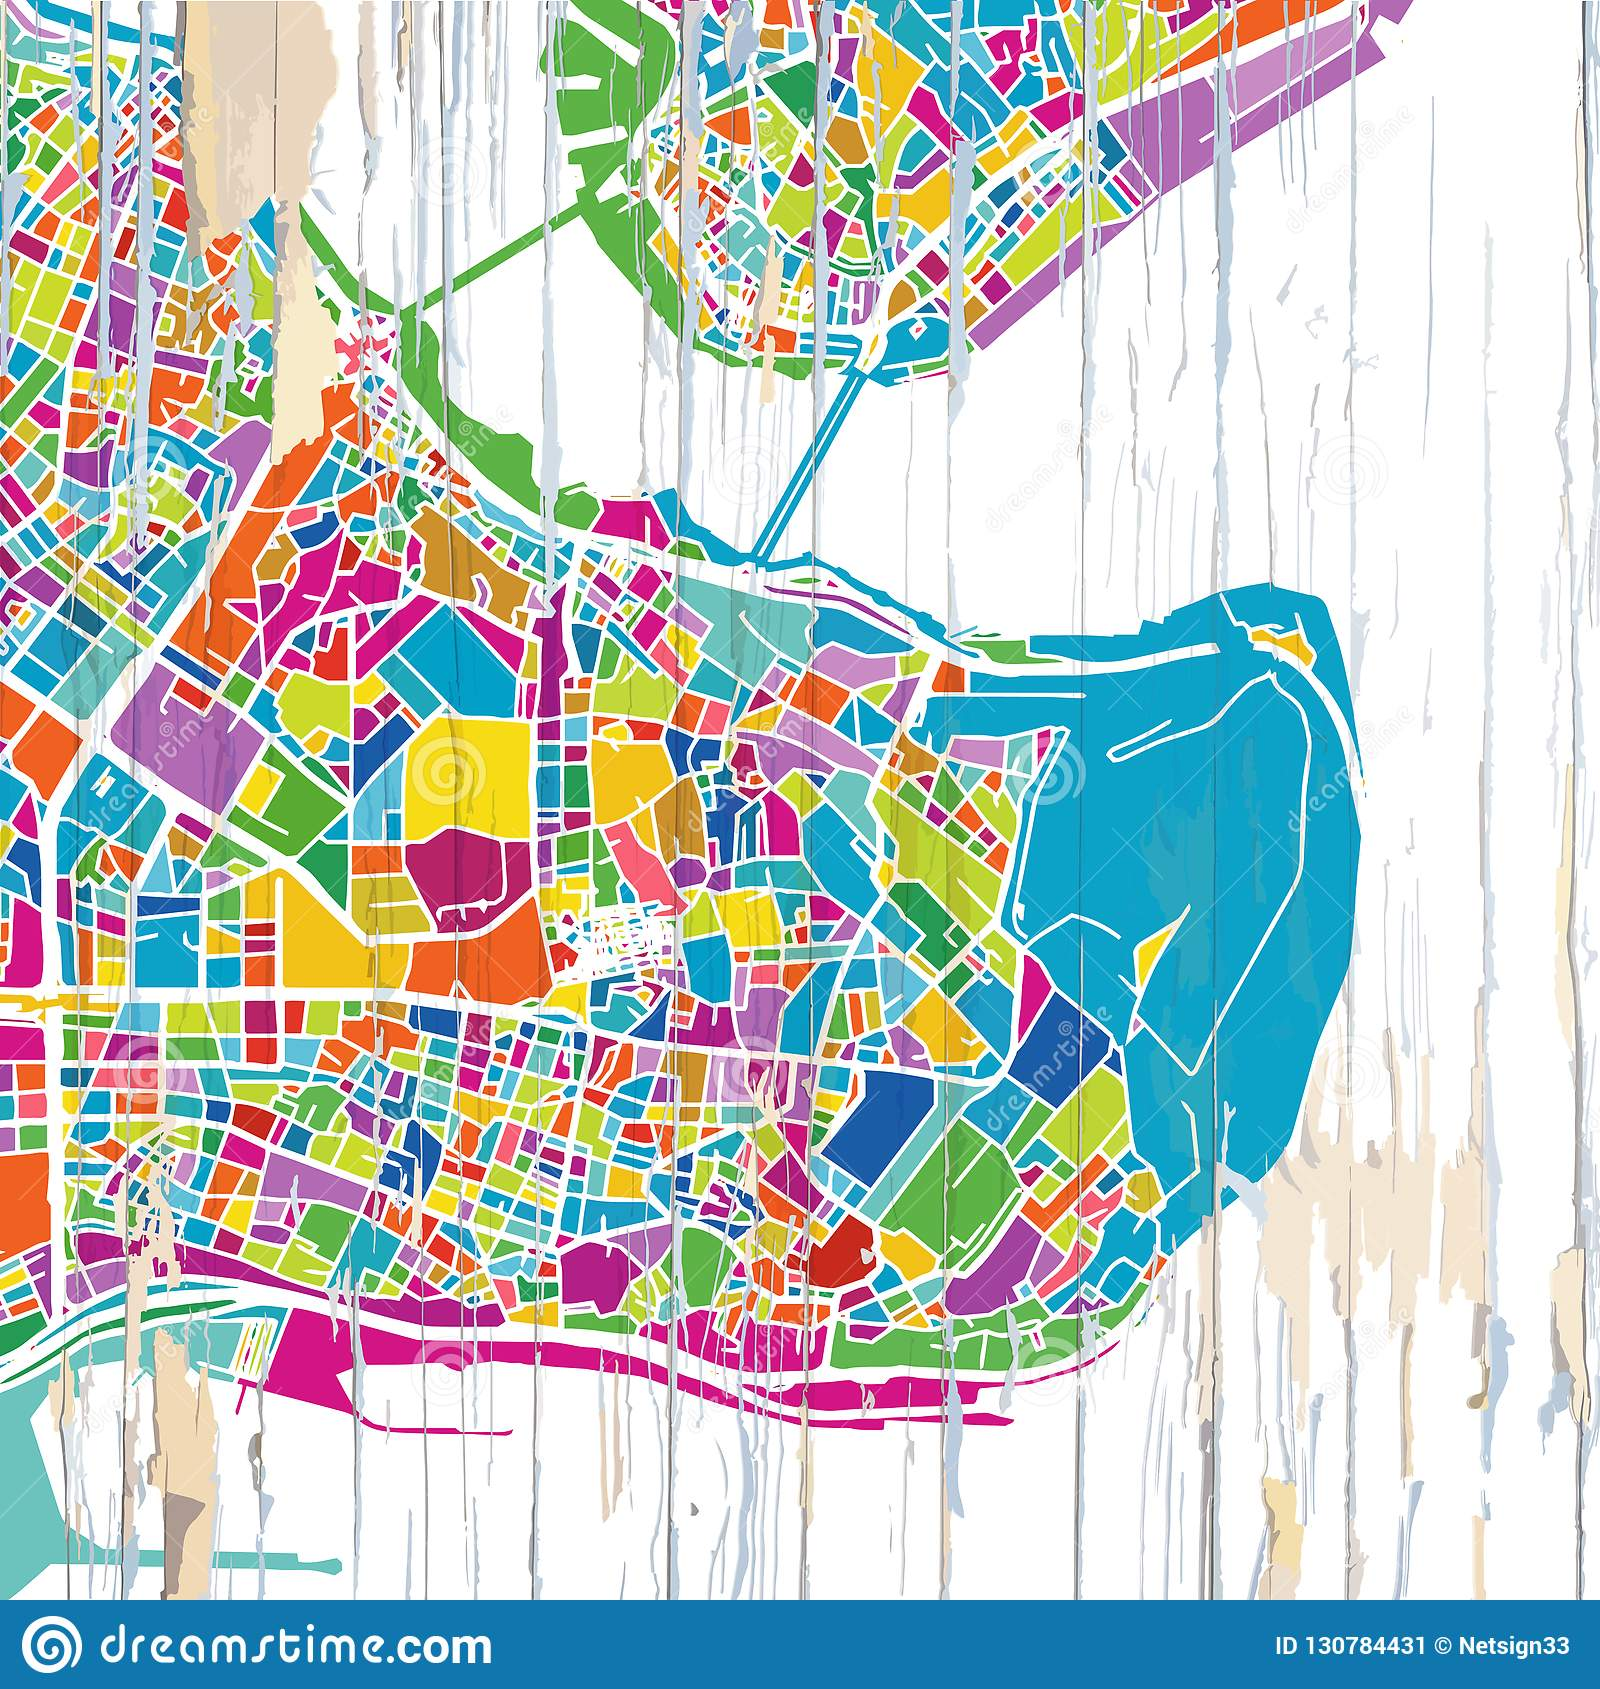 Colorful Istanbul map stock vector. Illustration of office - 130784431